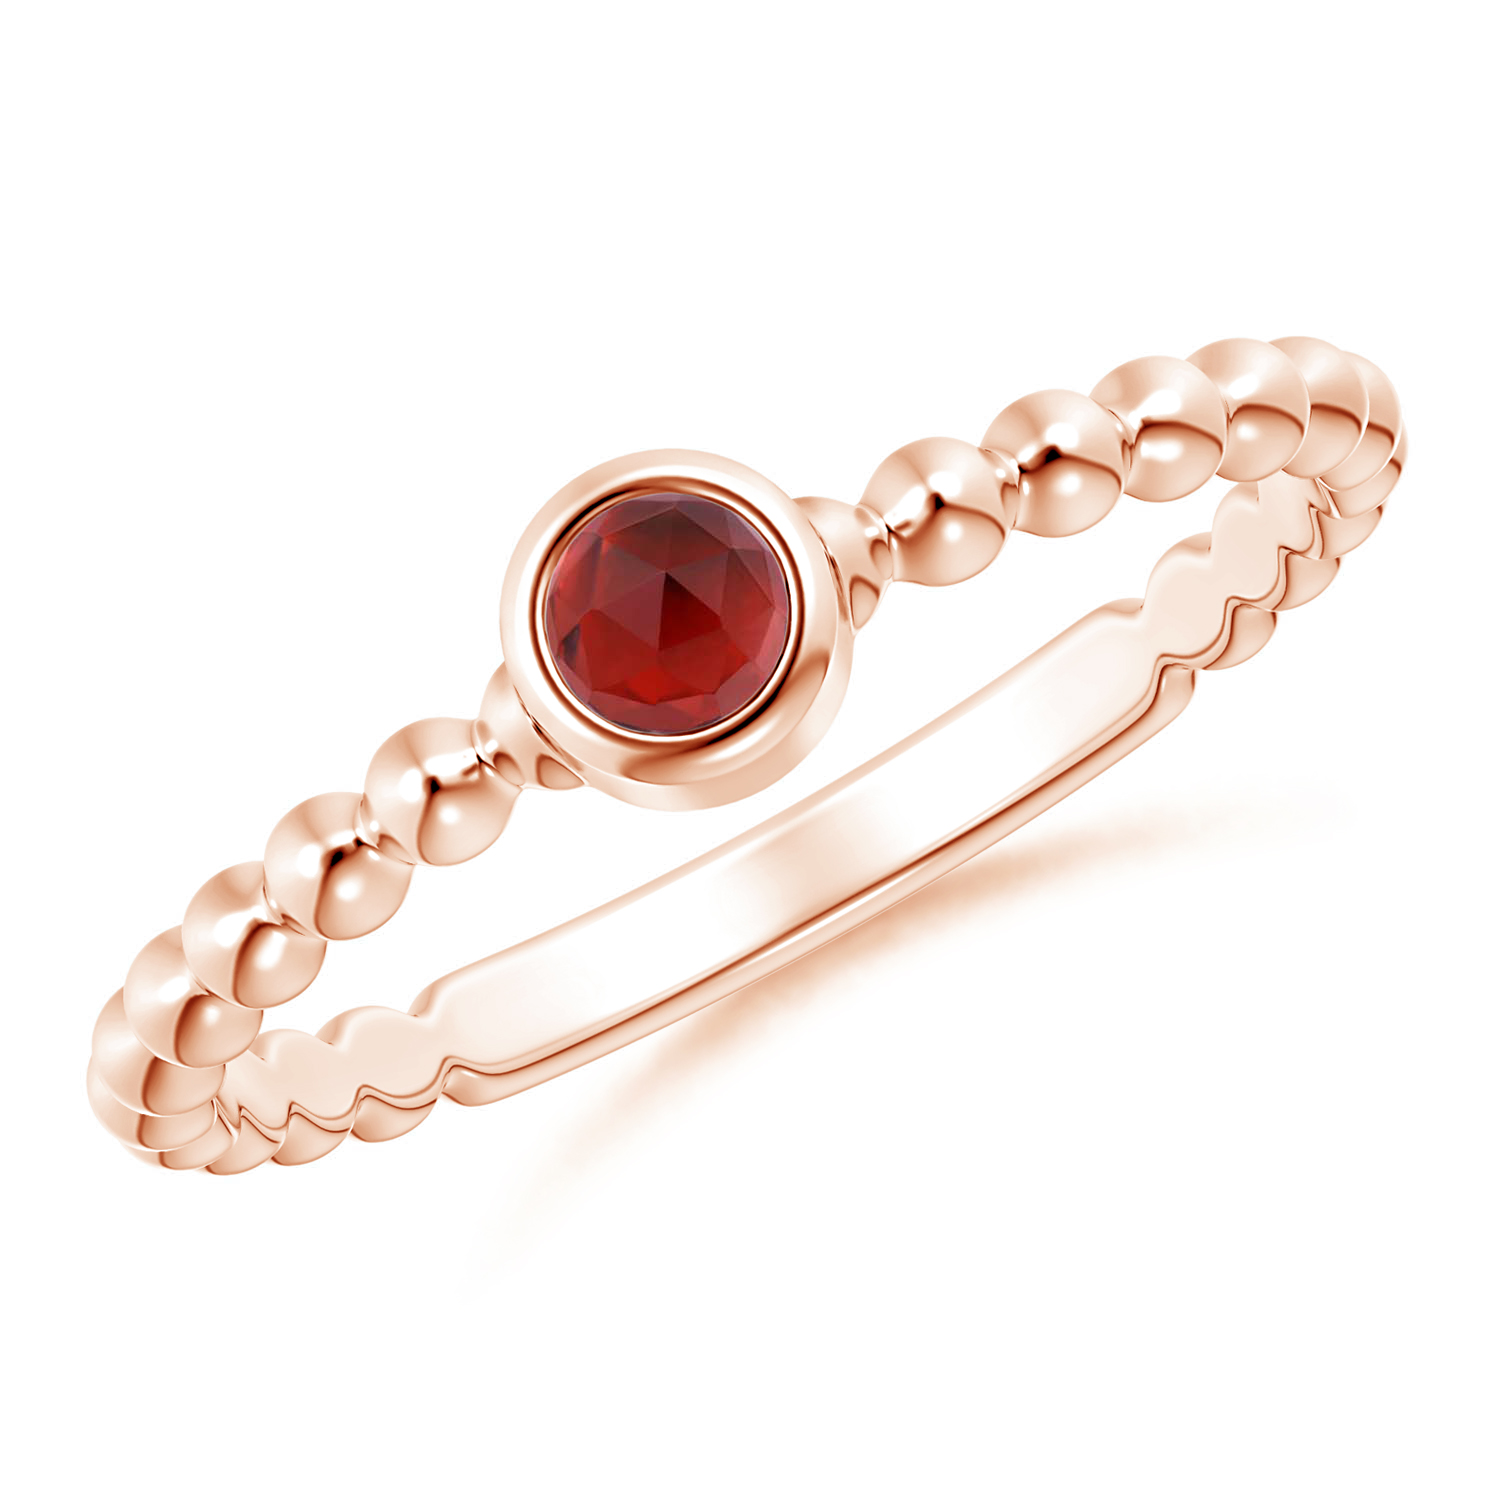 Bezel Set Garnet Stackable Ring with Beaded Shank - Angara.com